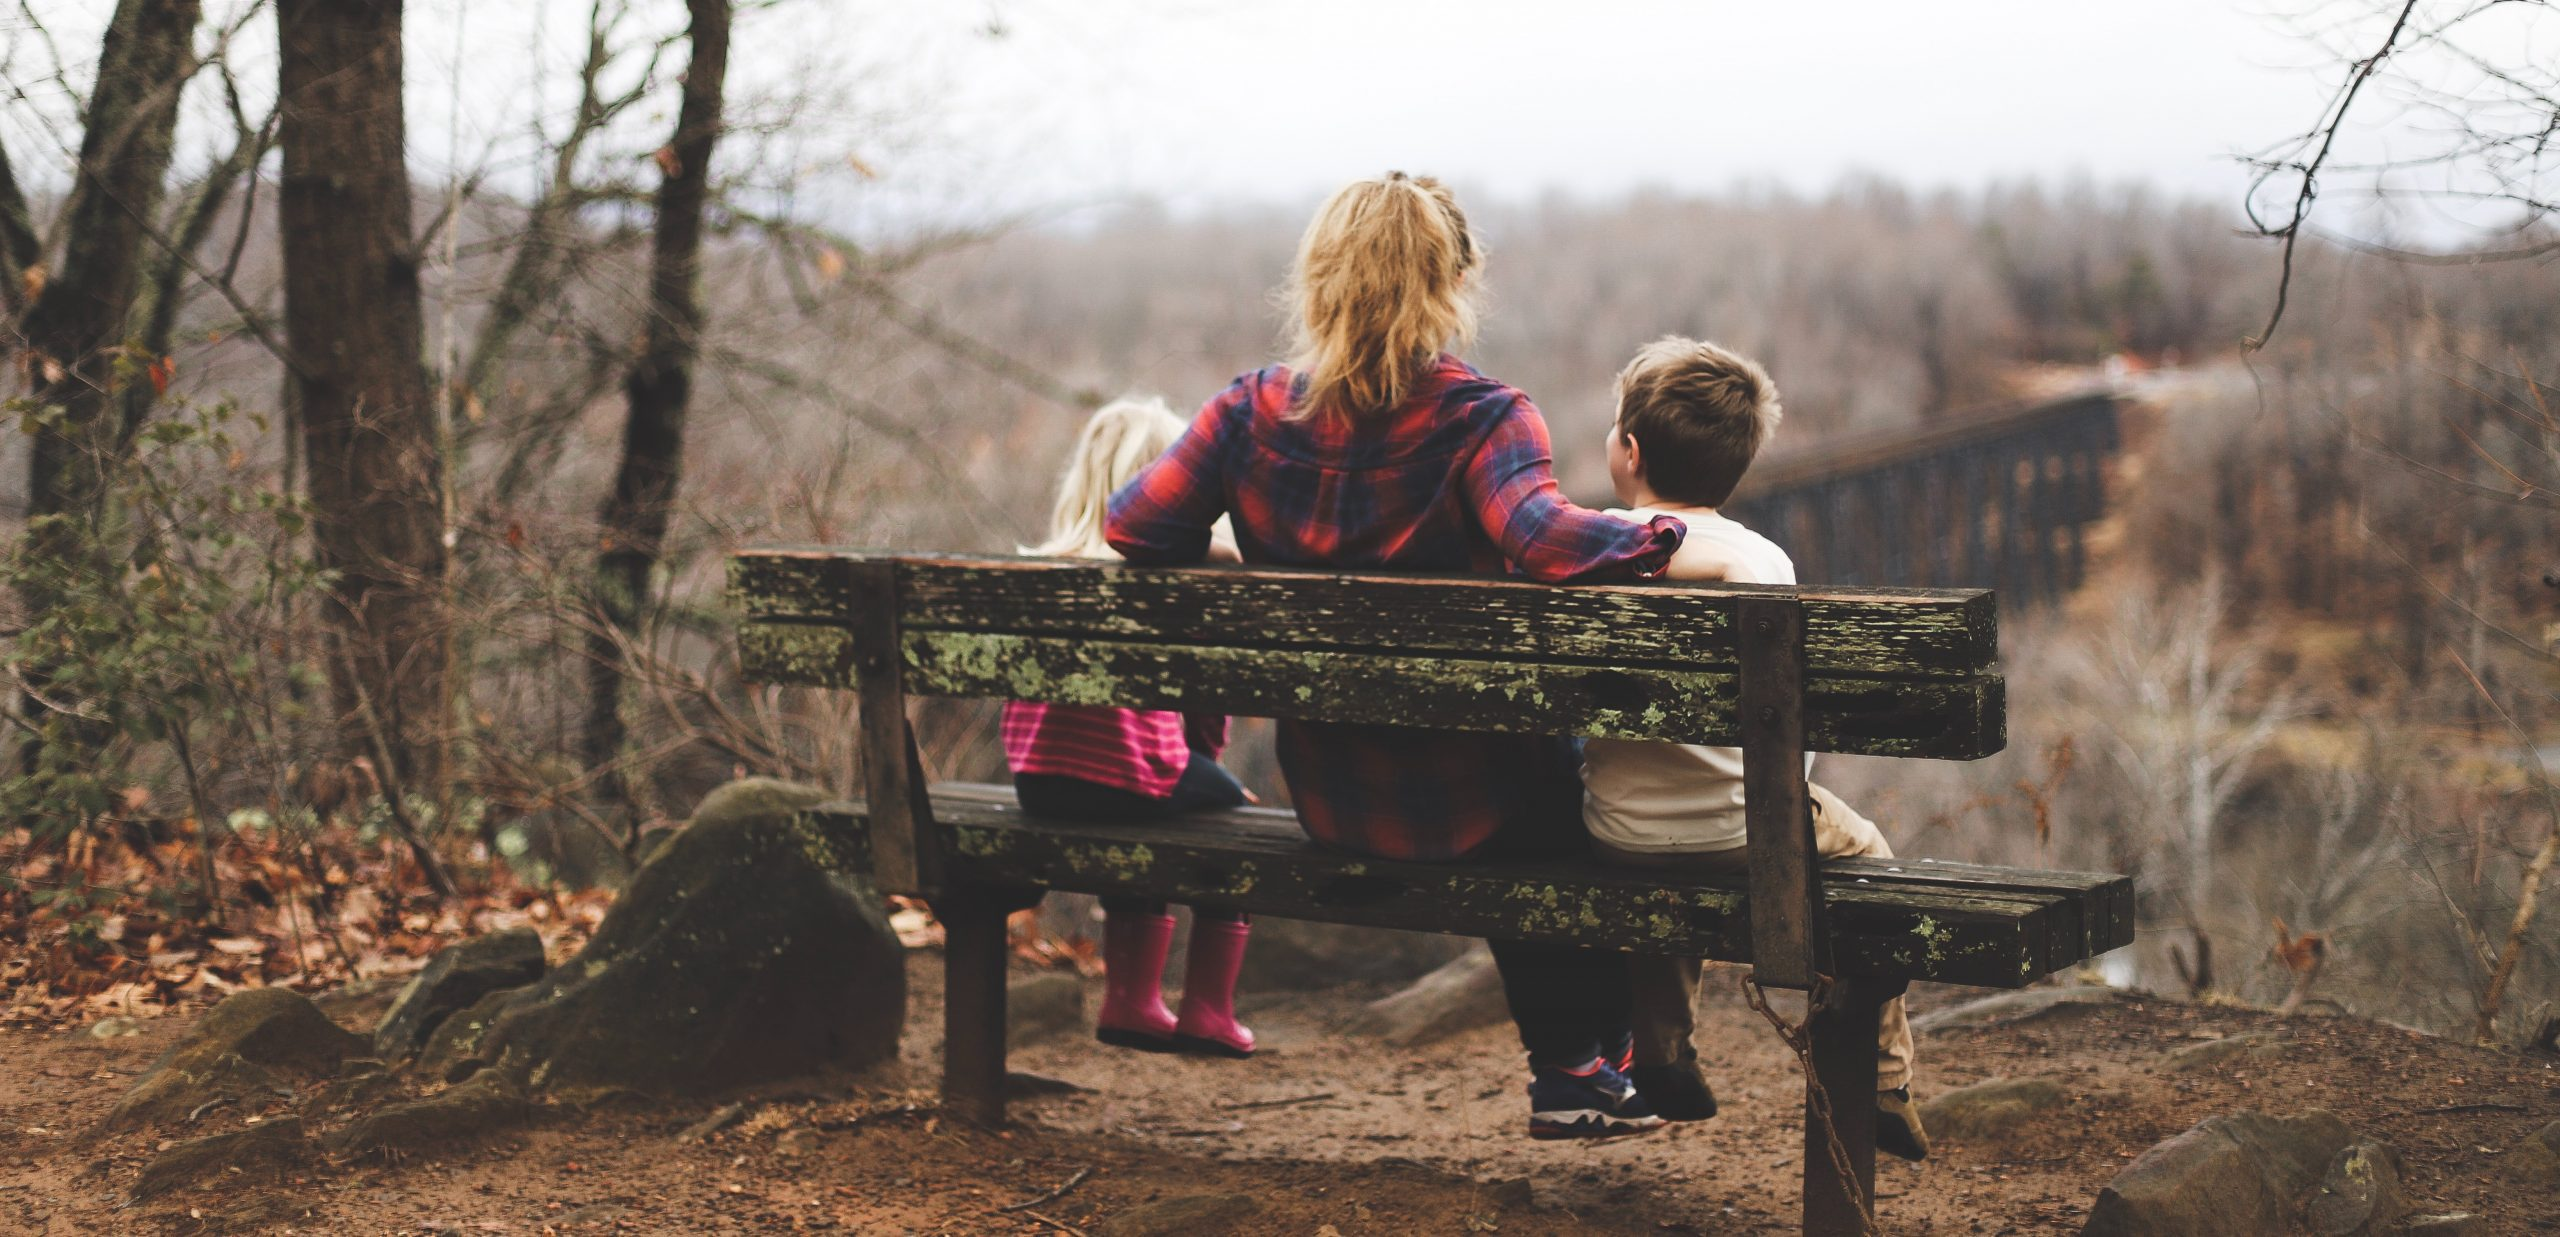 Answering touch questions from kids by Albuquerque Moms Blog